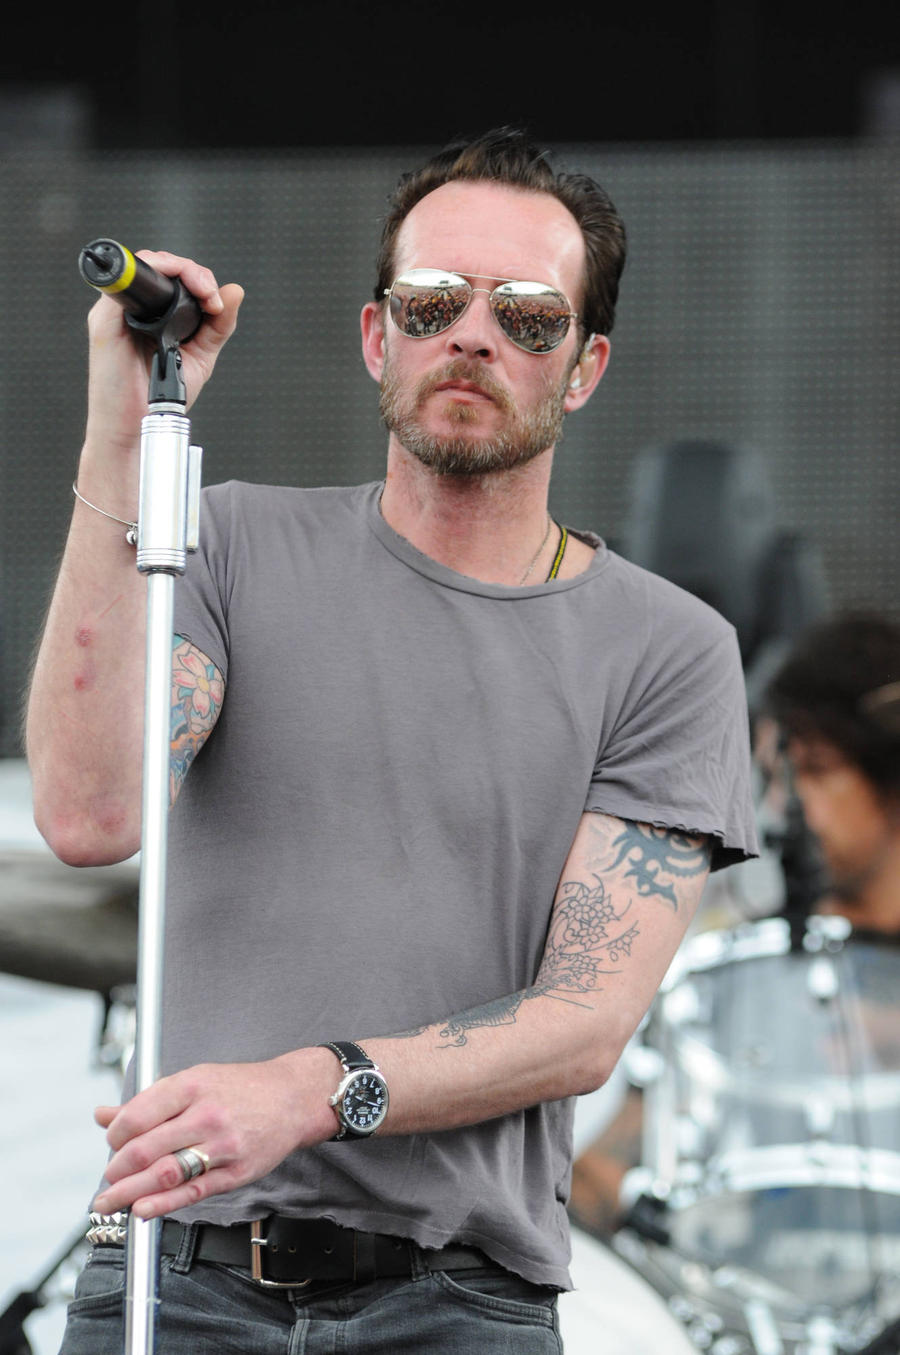 Scott Weiland's Estate Sued Over Tour Bus